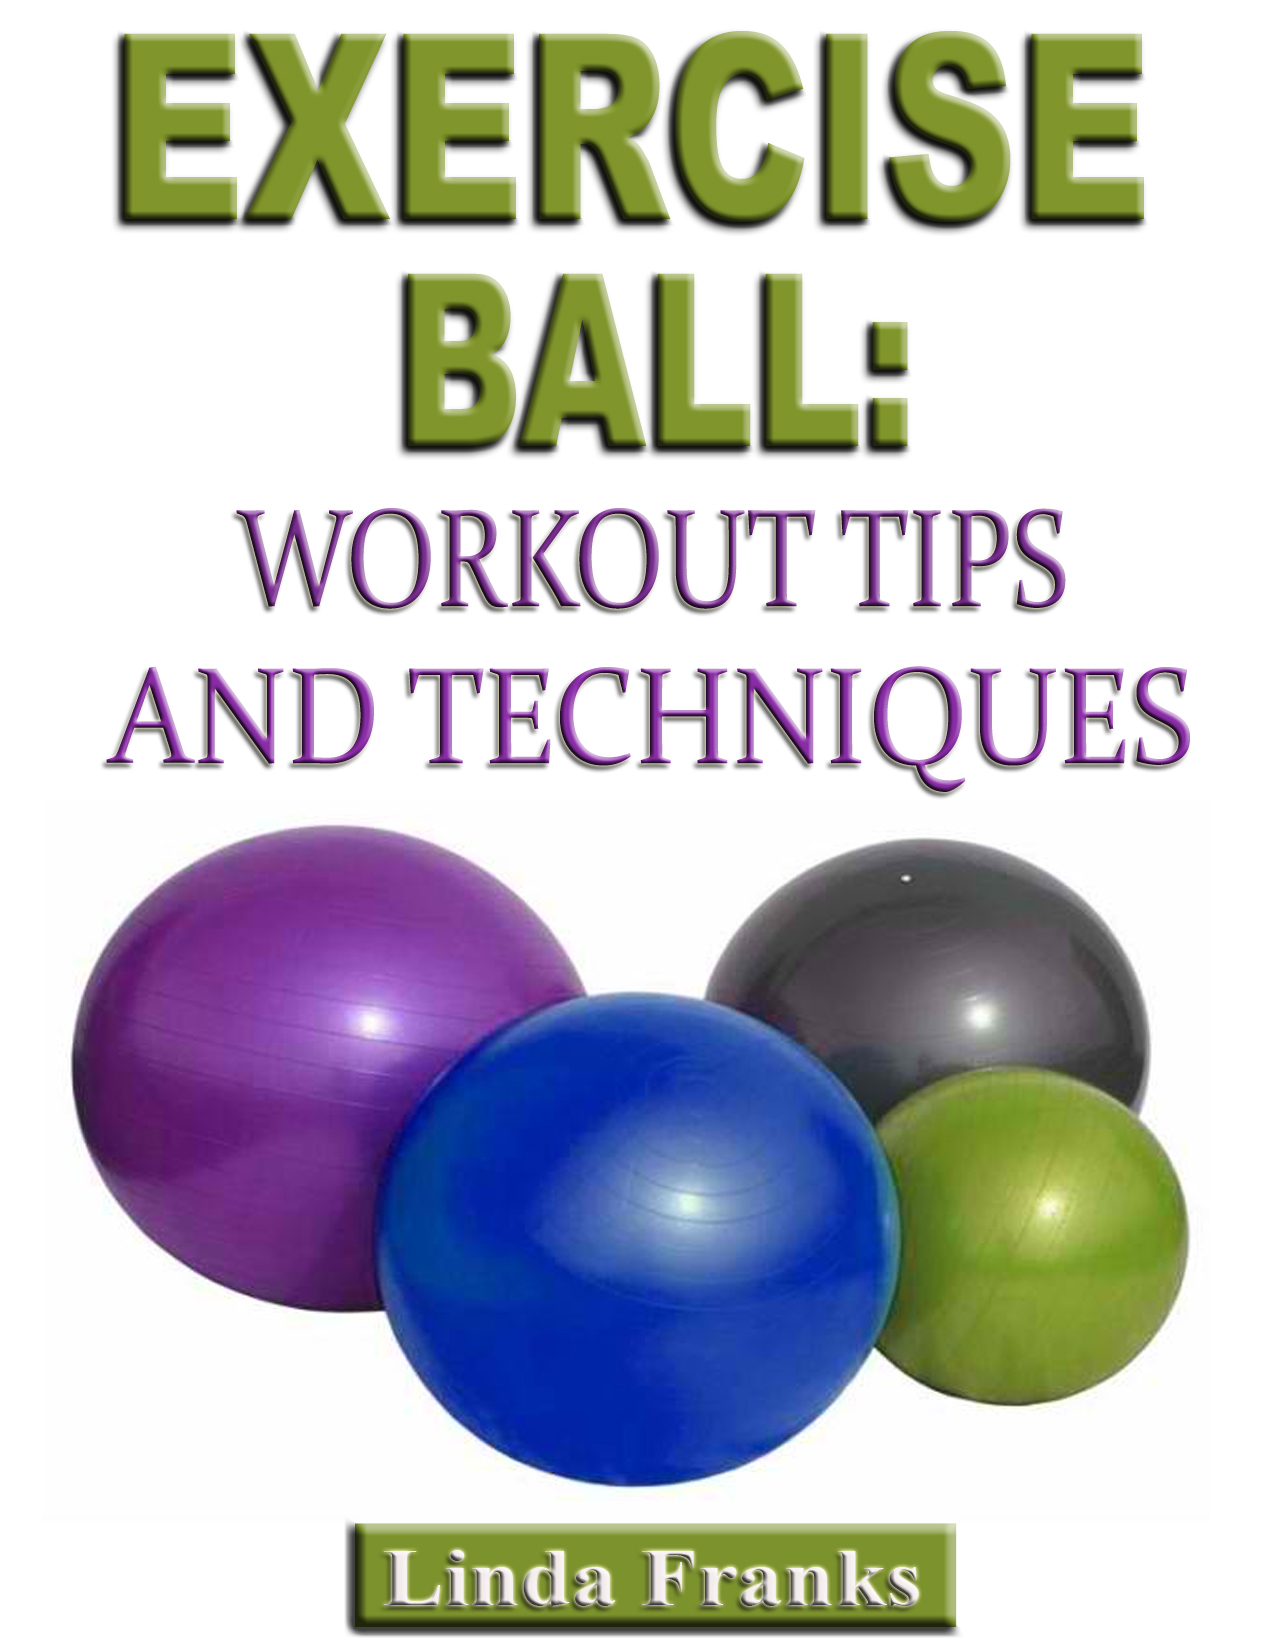 Exercise Ball: Workout Tips and Techniques